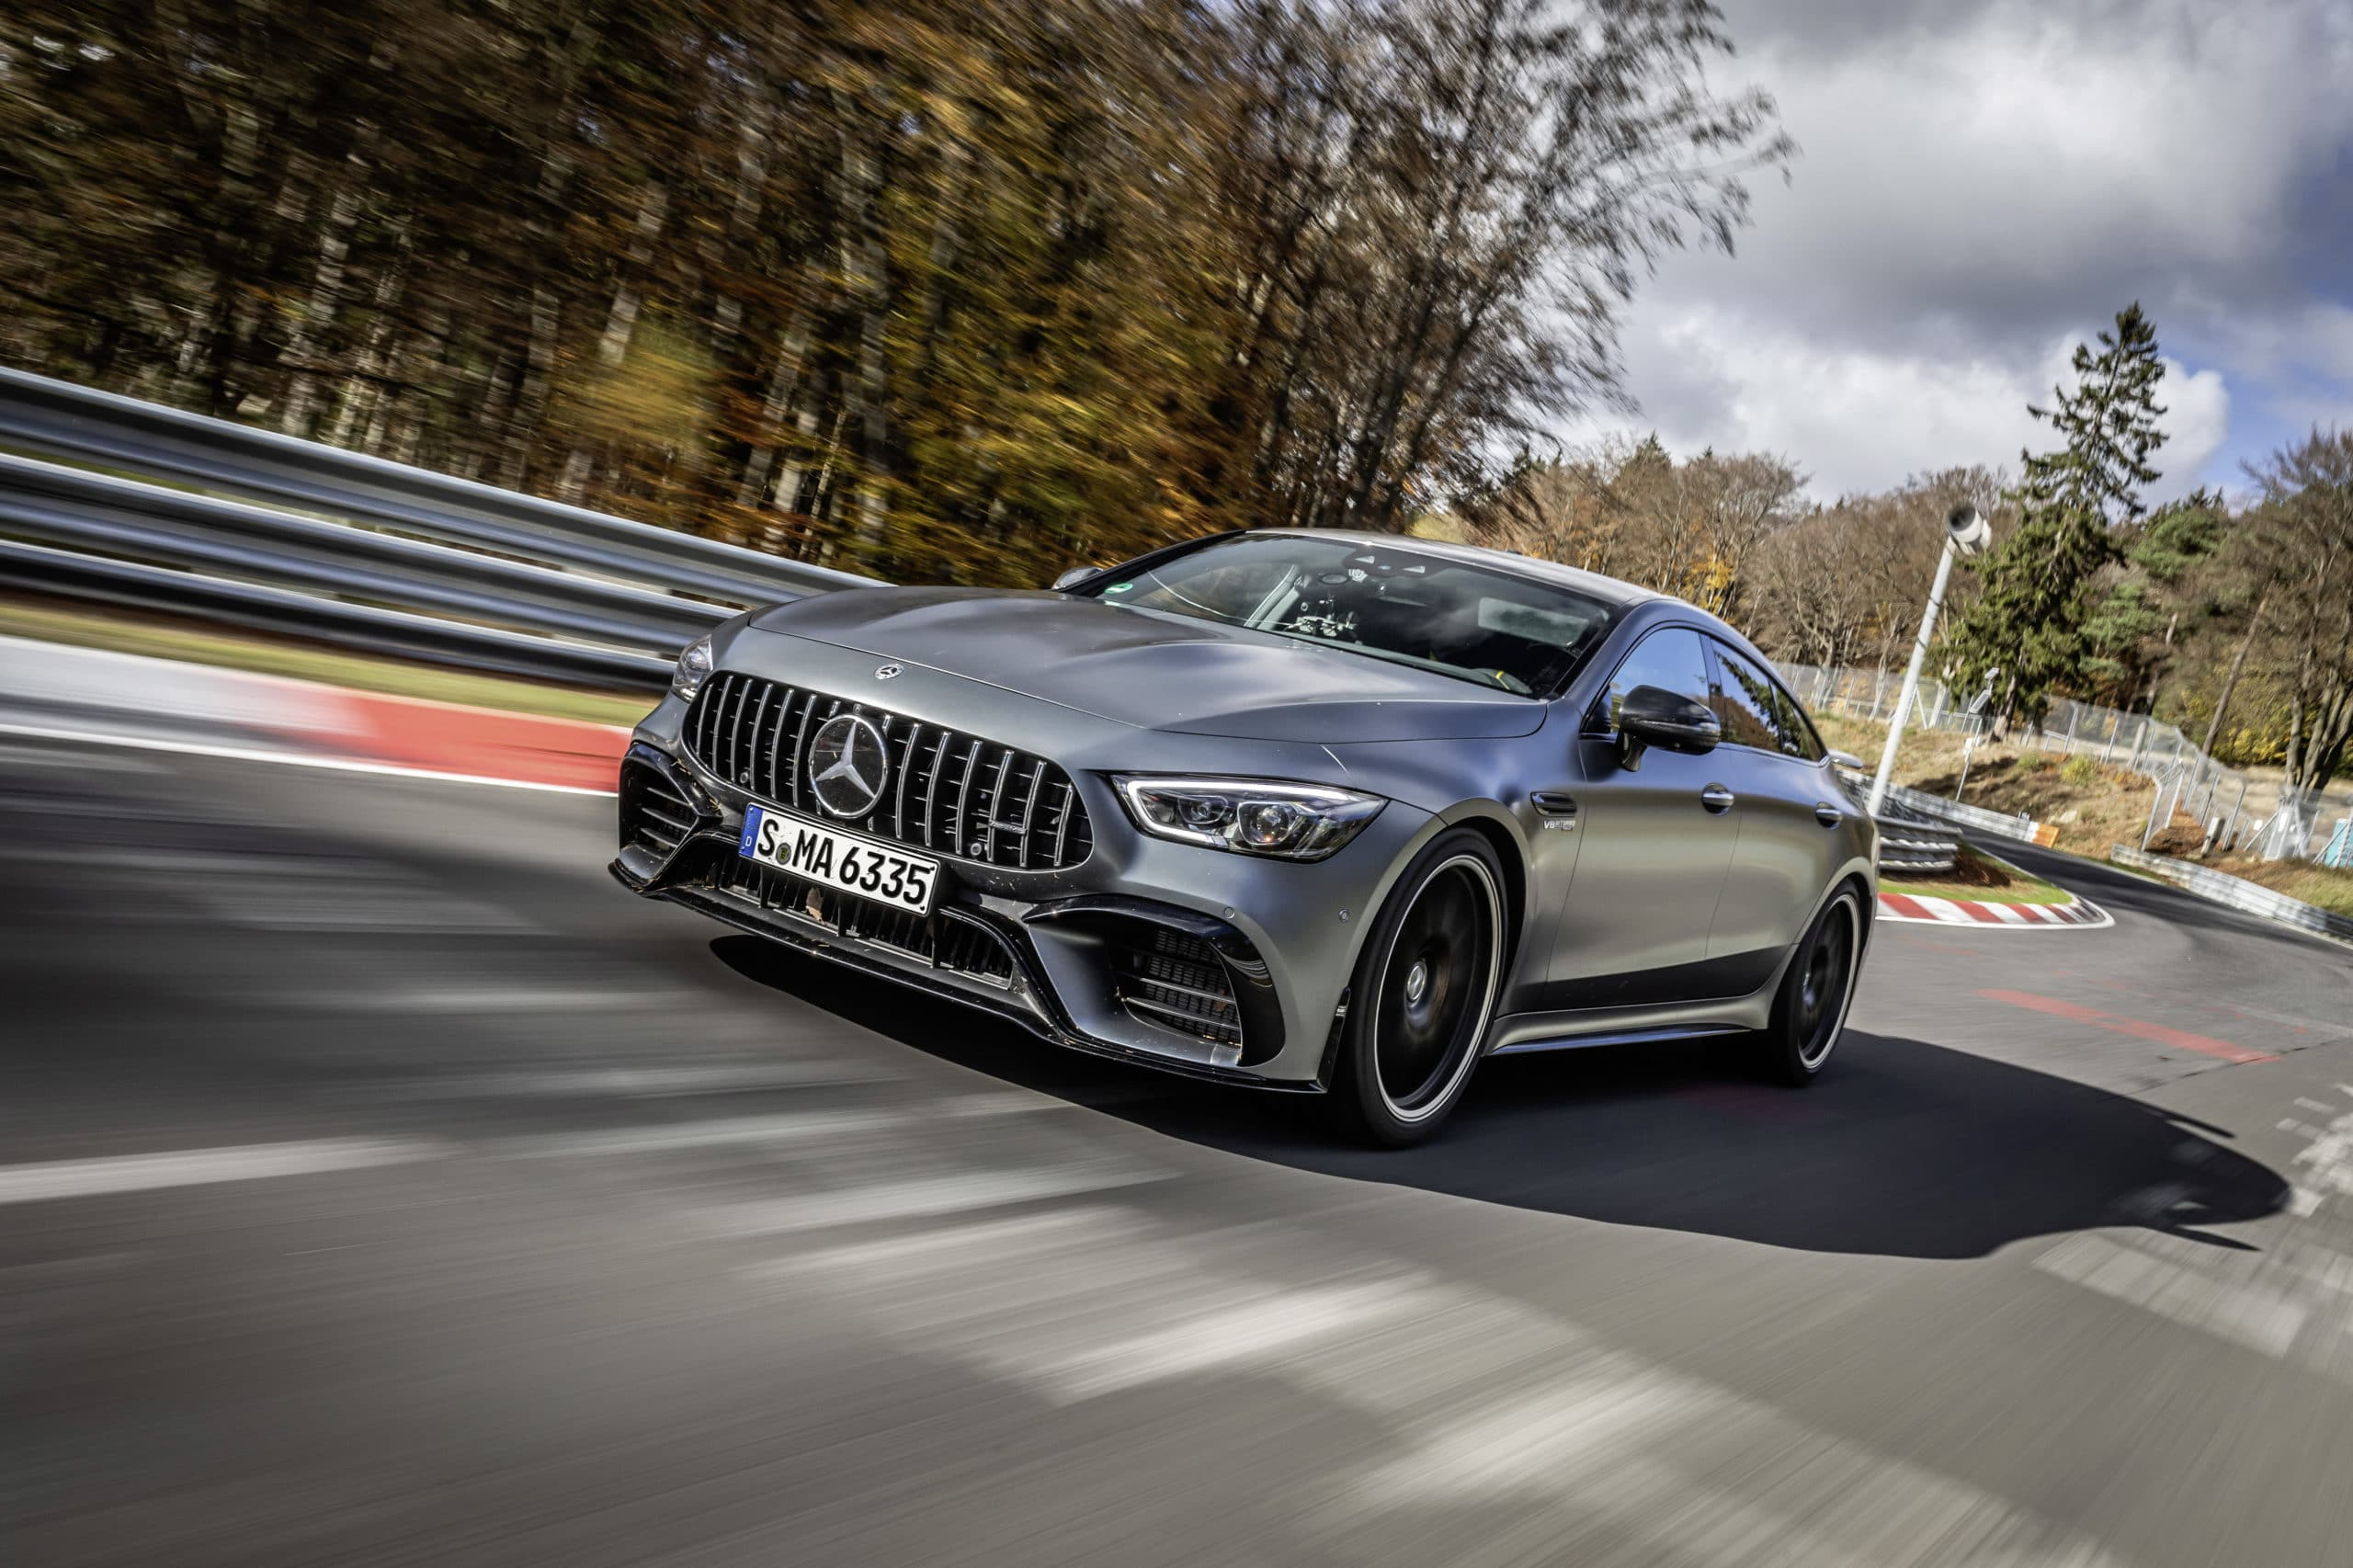 2021 Mercedes AMG GT 63 S 1 scaled